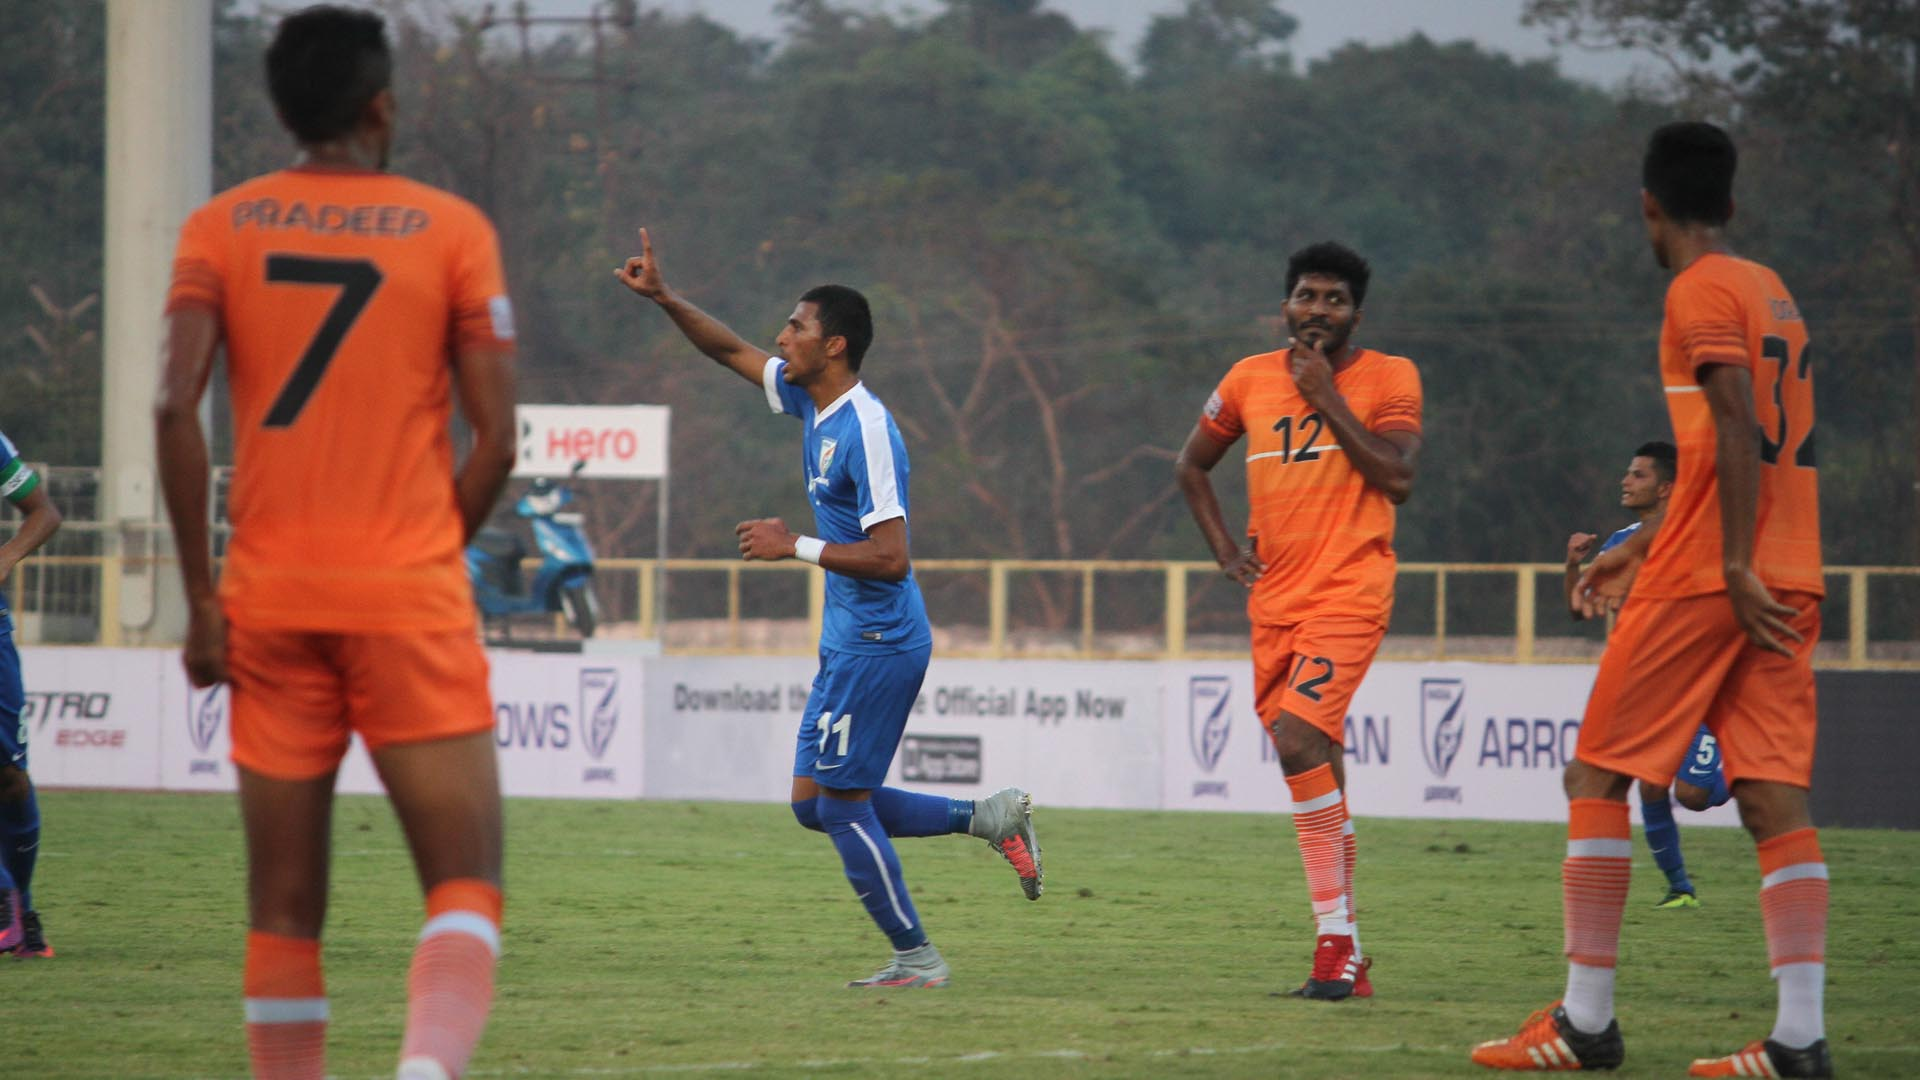 I-League: Luis Matos explains why Aniket Jadhav didn't participate in AFC Under-19 qualifiers